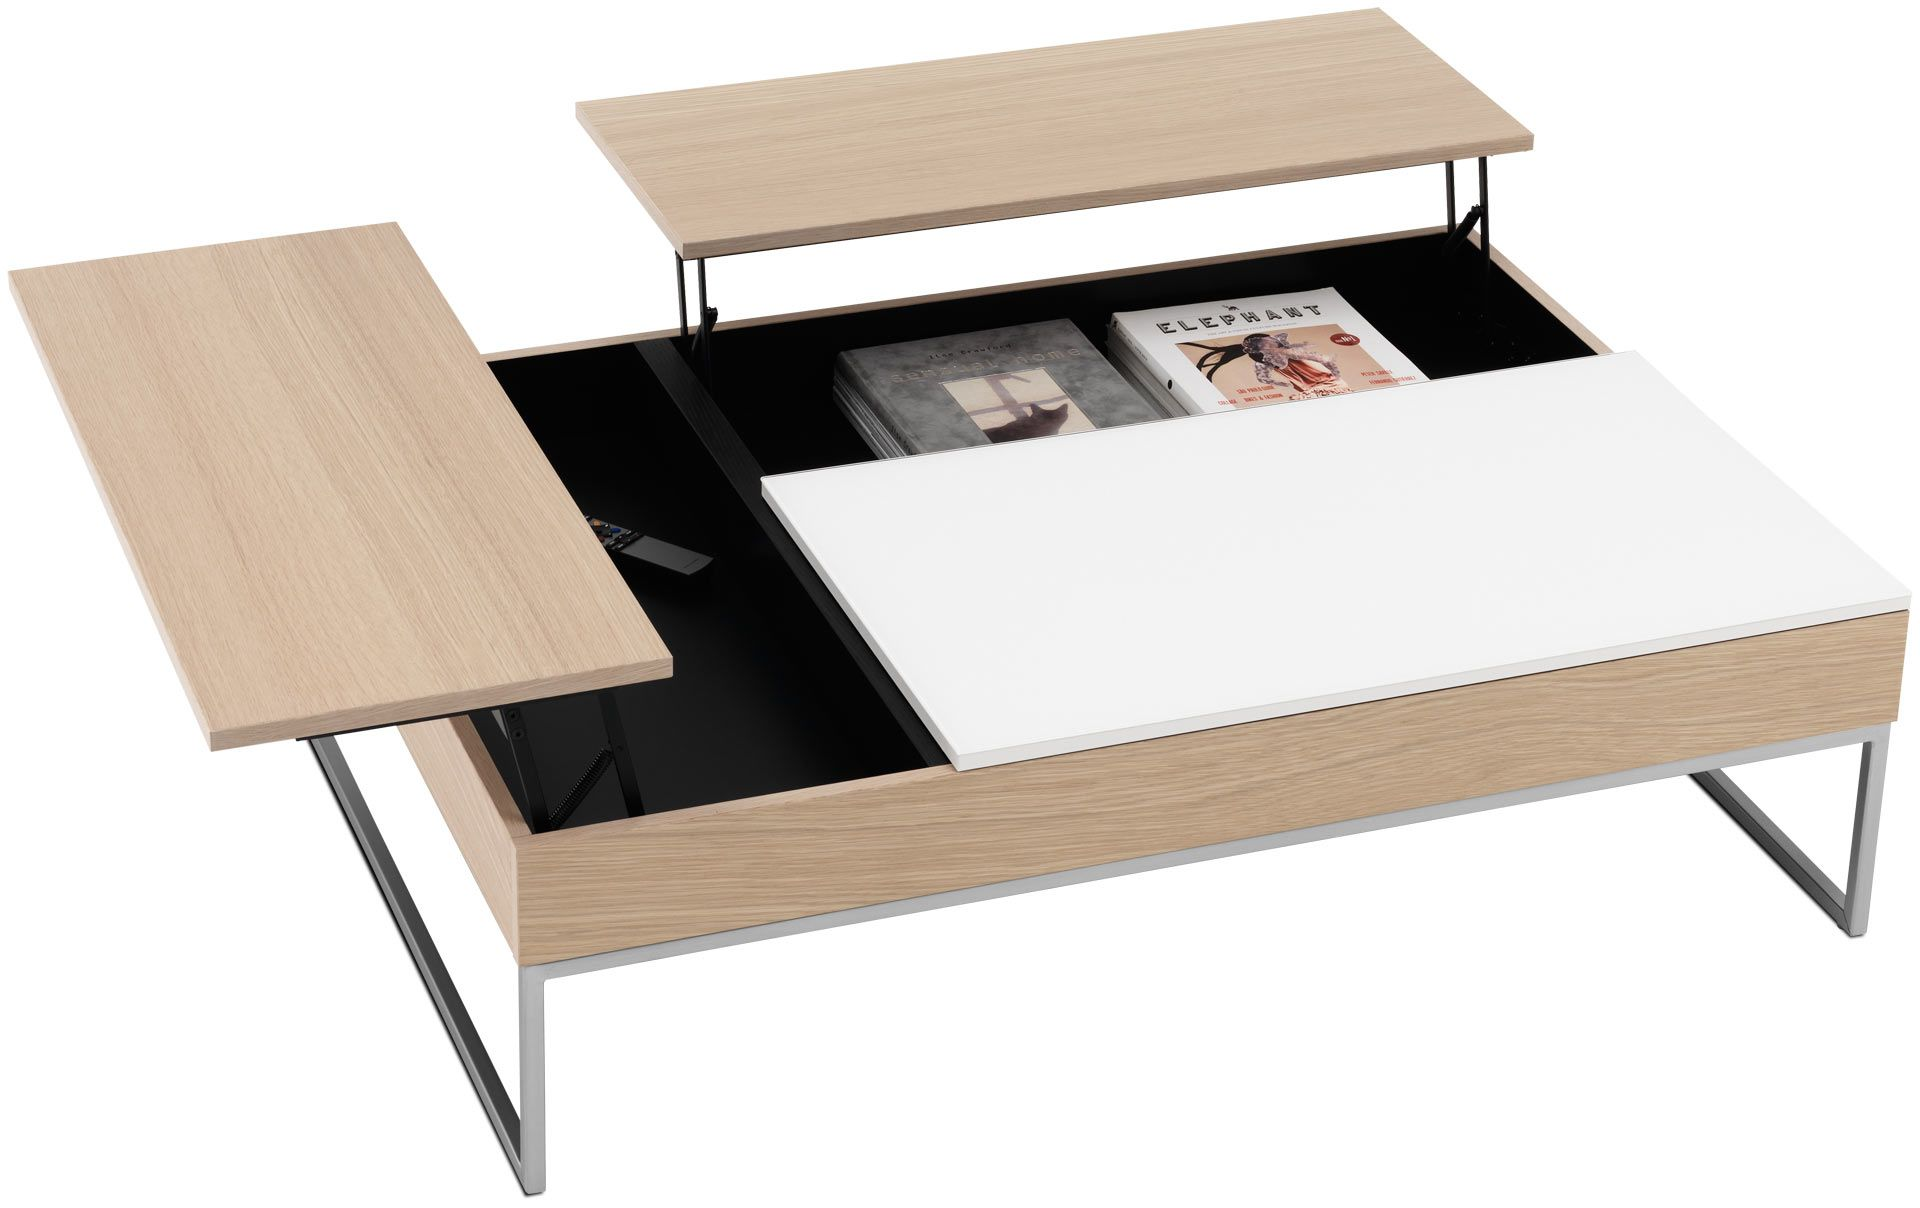 Modern Coffee Tables - Contemporary Coffee Tables - BoConcept ...